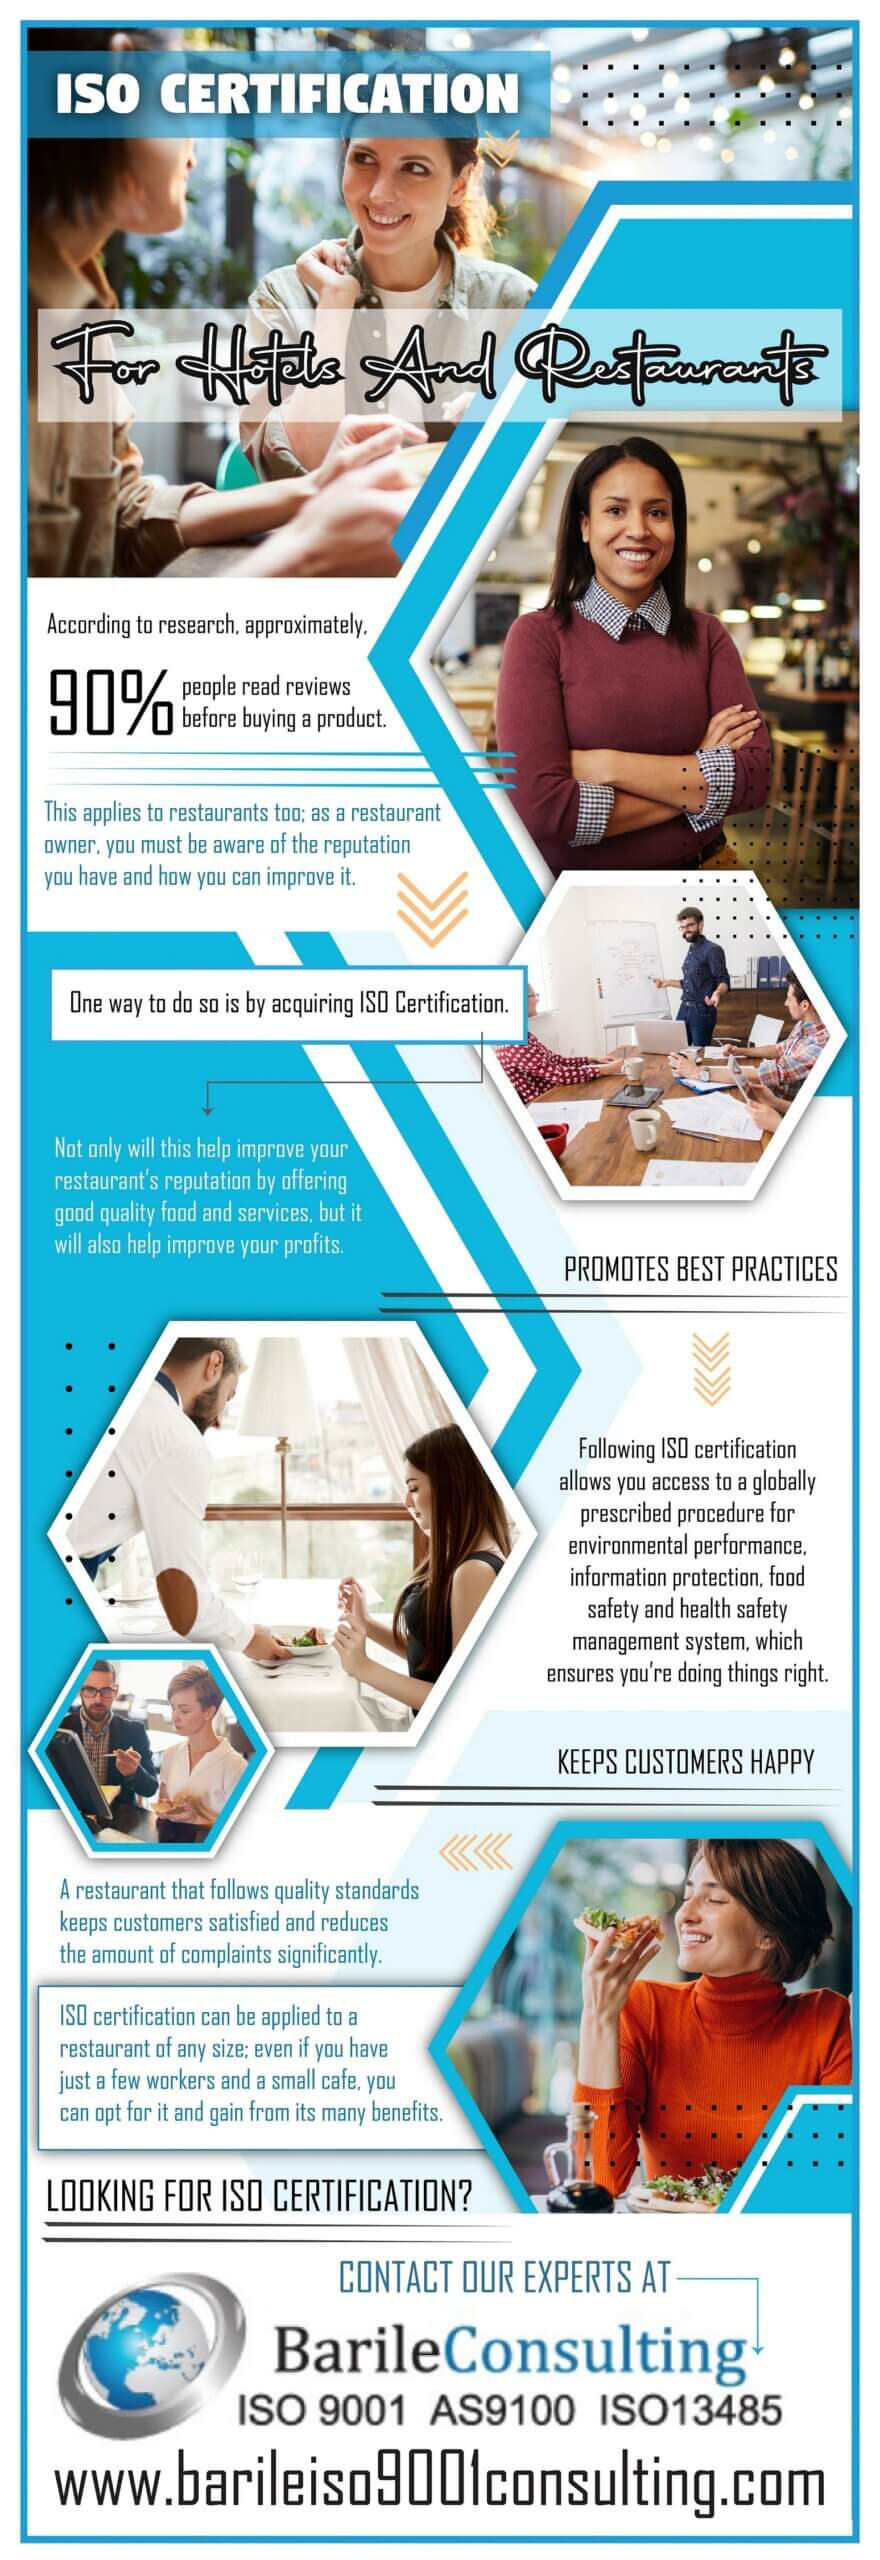 ISO CERTIFICATION FOR HOTELS AND RESTAURANT